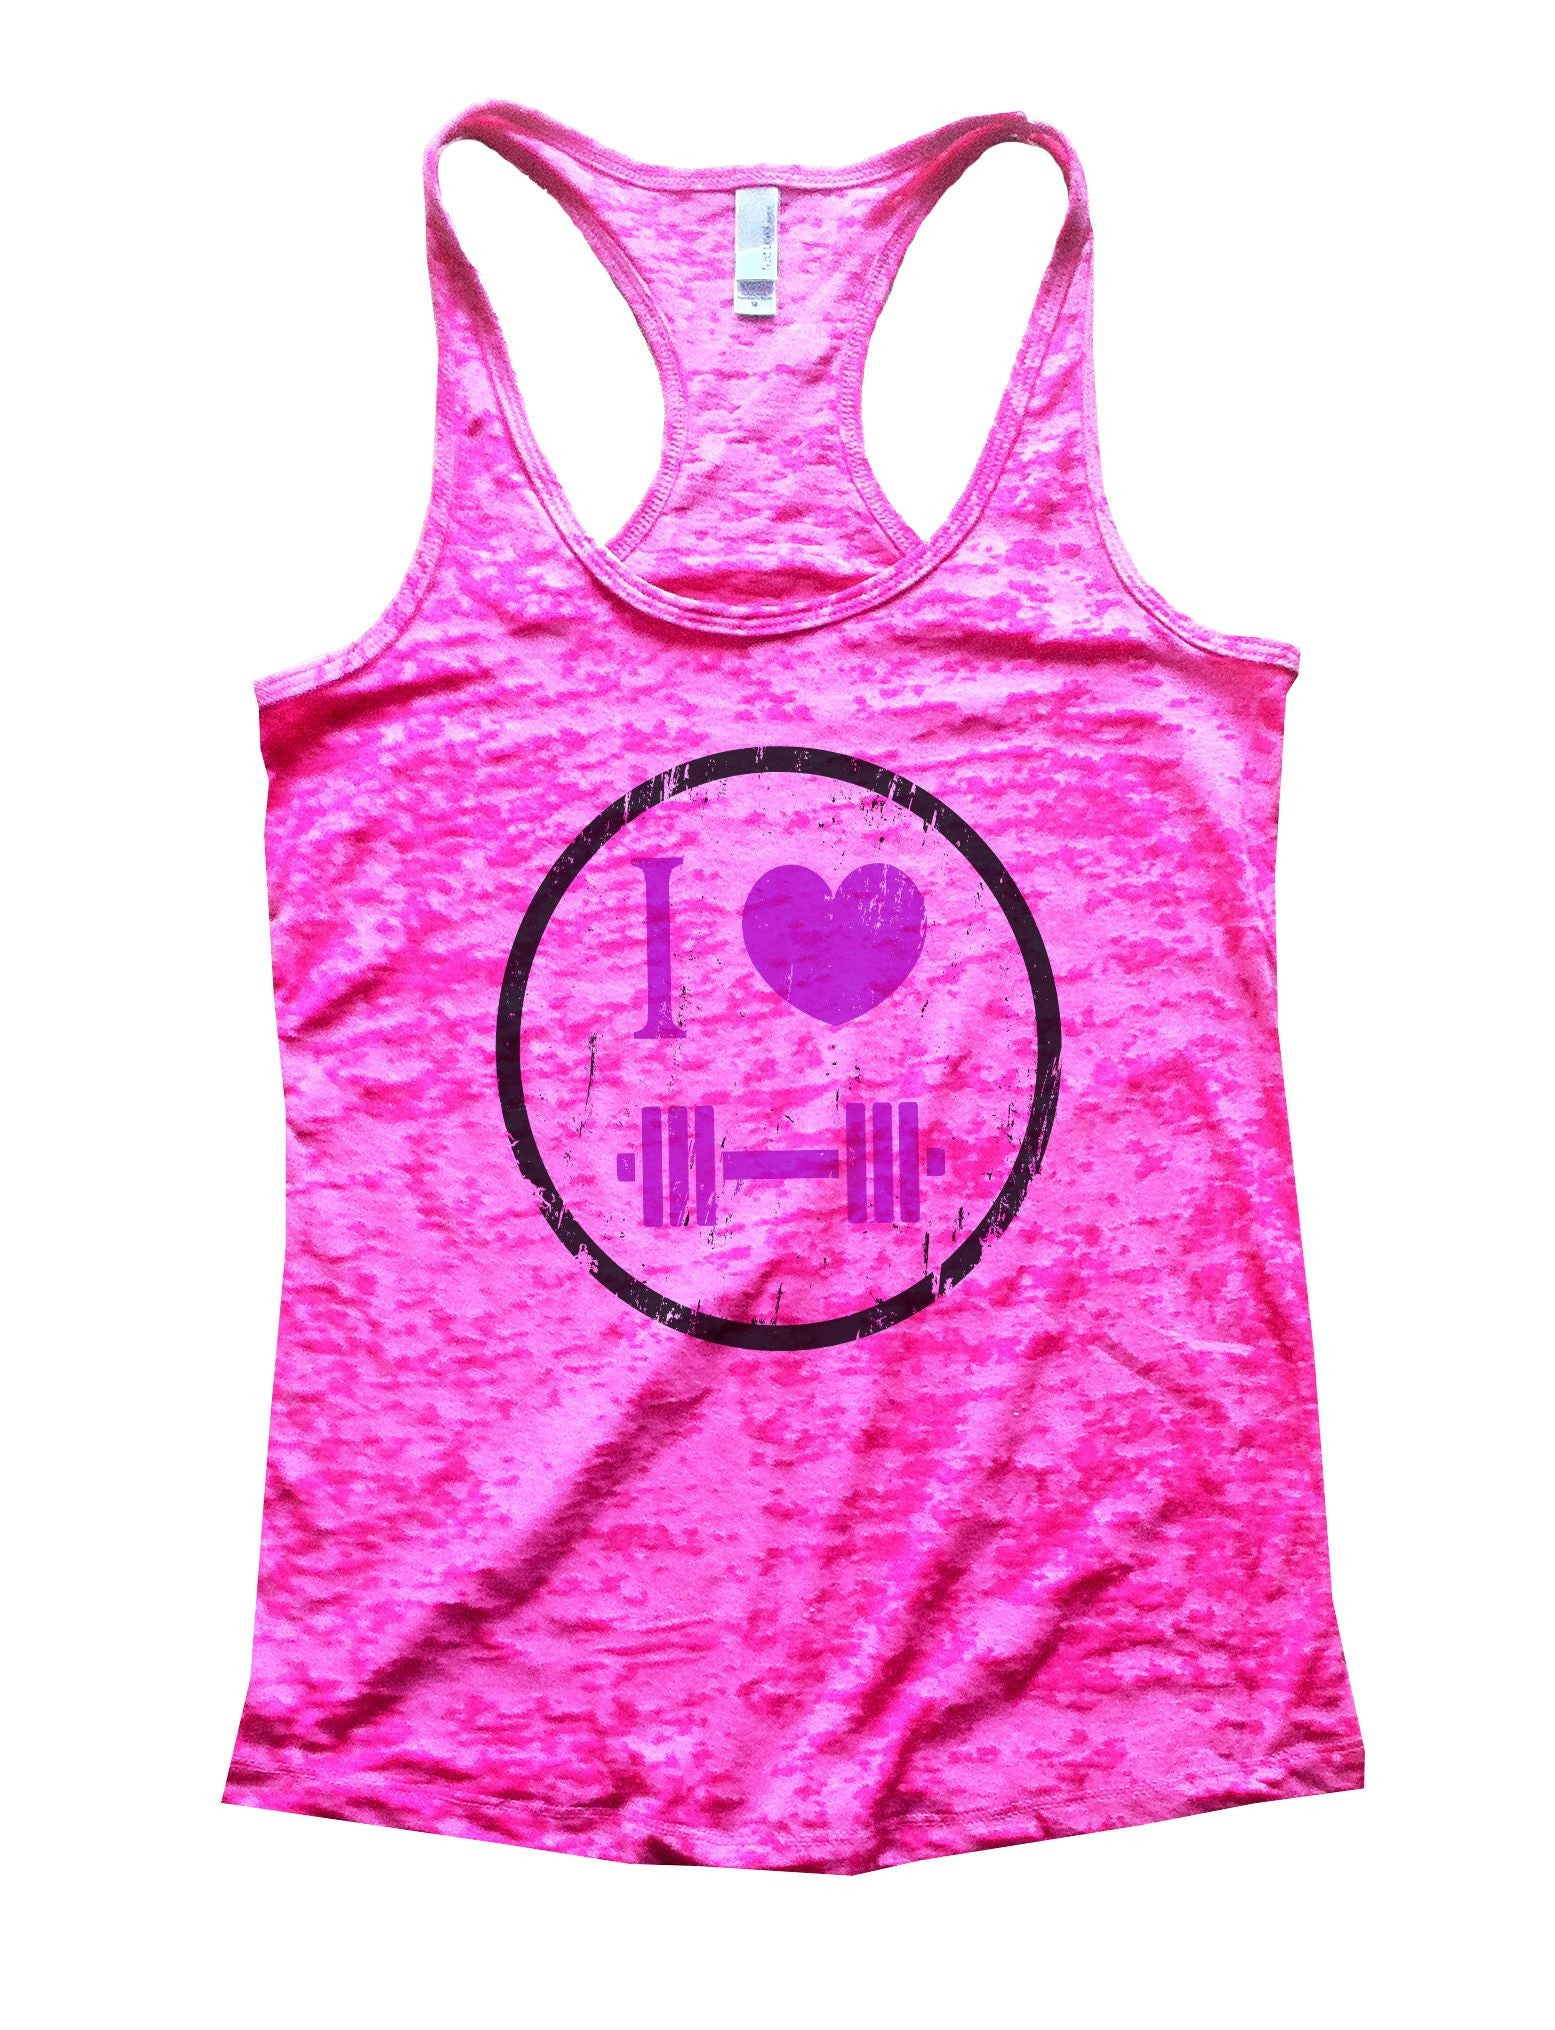 I Love Weightlifting Burnout Tank Top By BurnoutTankTops.com - 726 - Funny Shirts Tank Tops Burnouts and Triblends  - 4